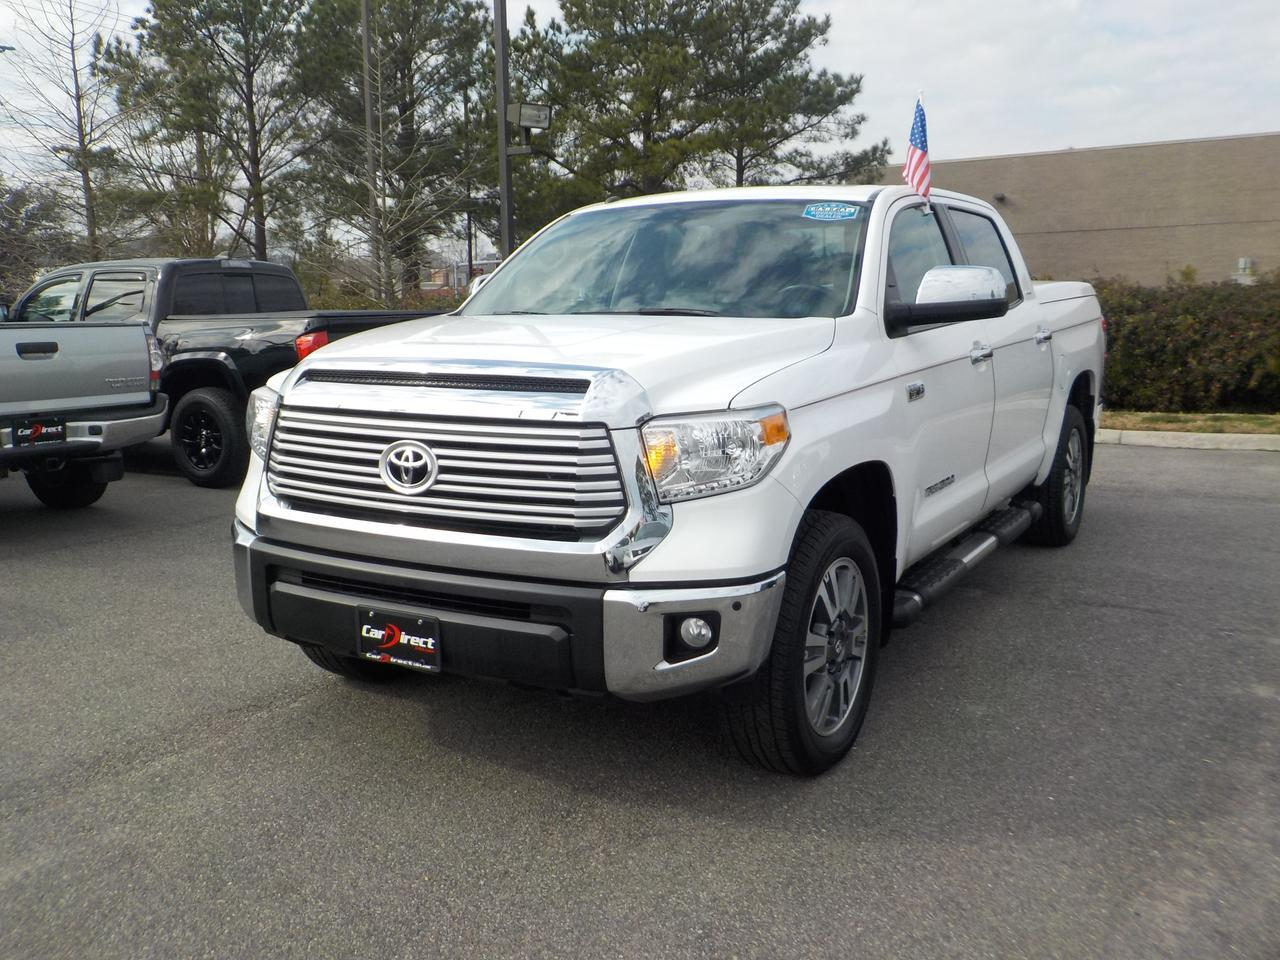 2017 TOYOTA TUNDRA CREWMAX LIMITED 4X4, NAVI, LEATHER HEATED SEATS, HARD TONNEAU COVER, TOW PKG, SUNROOF, BACKUP CAM!